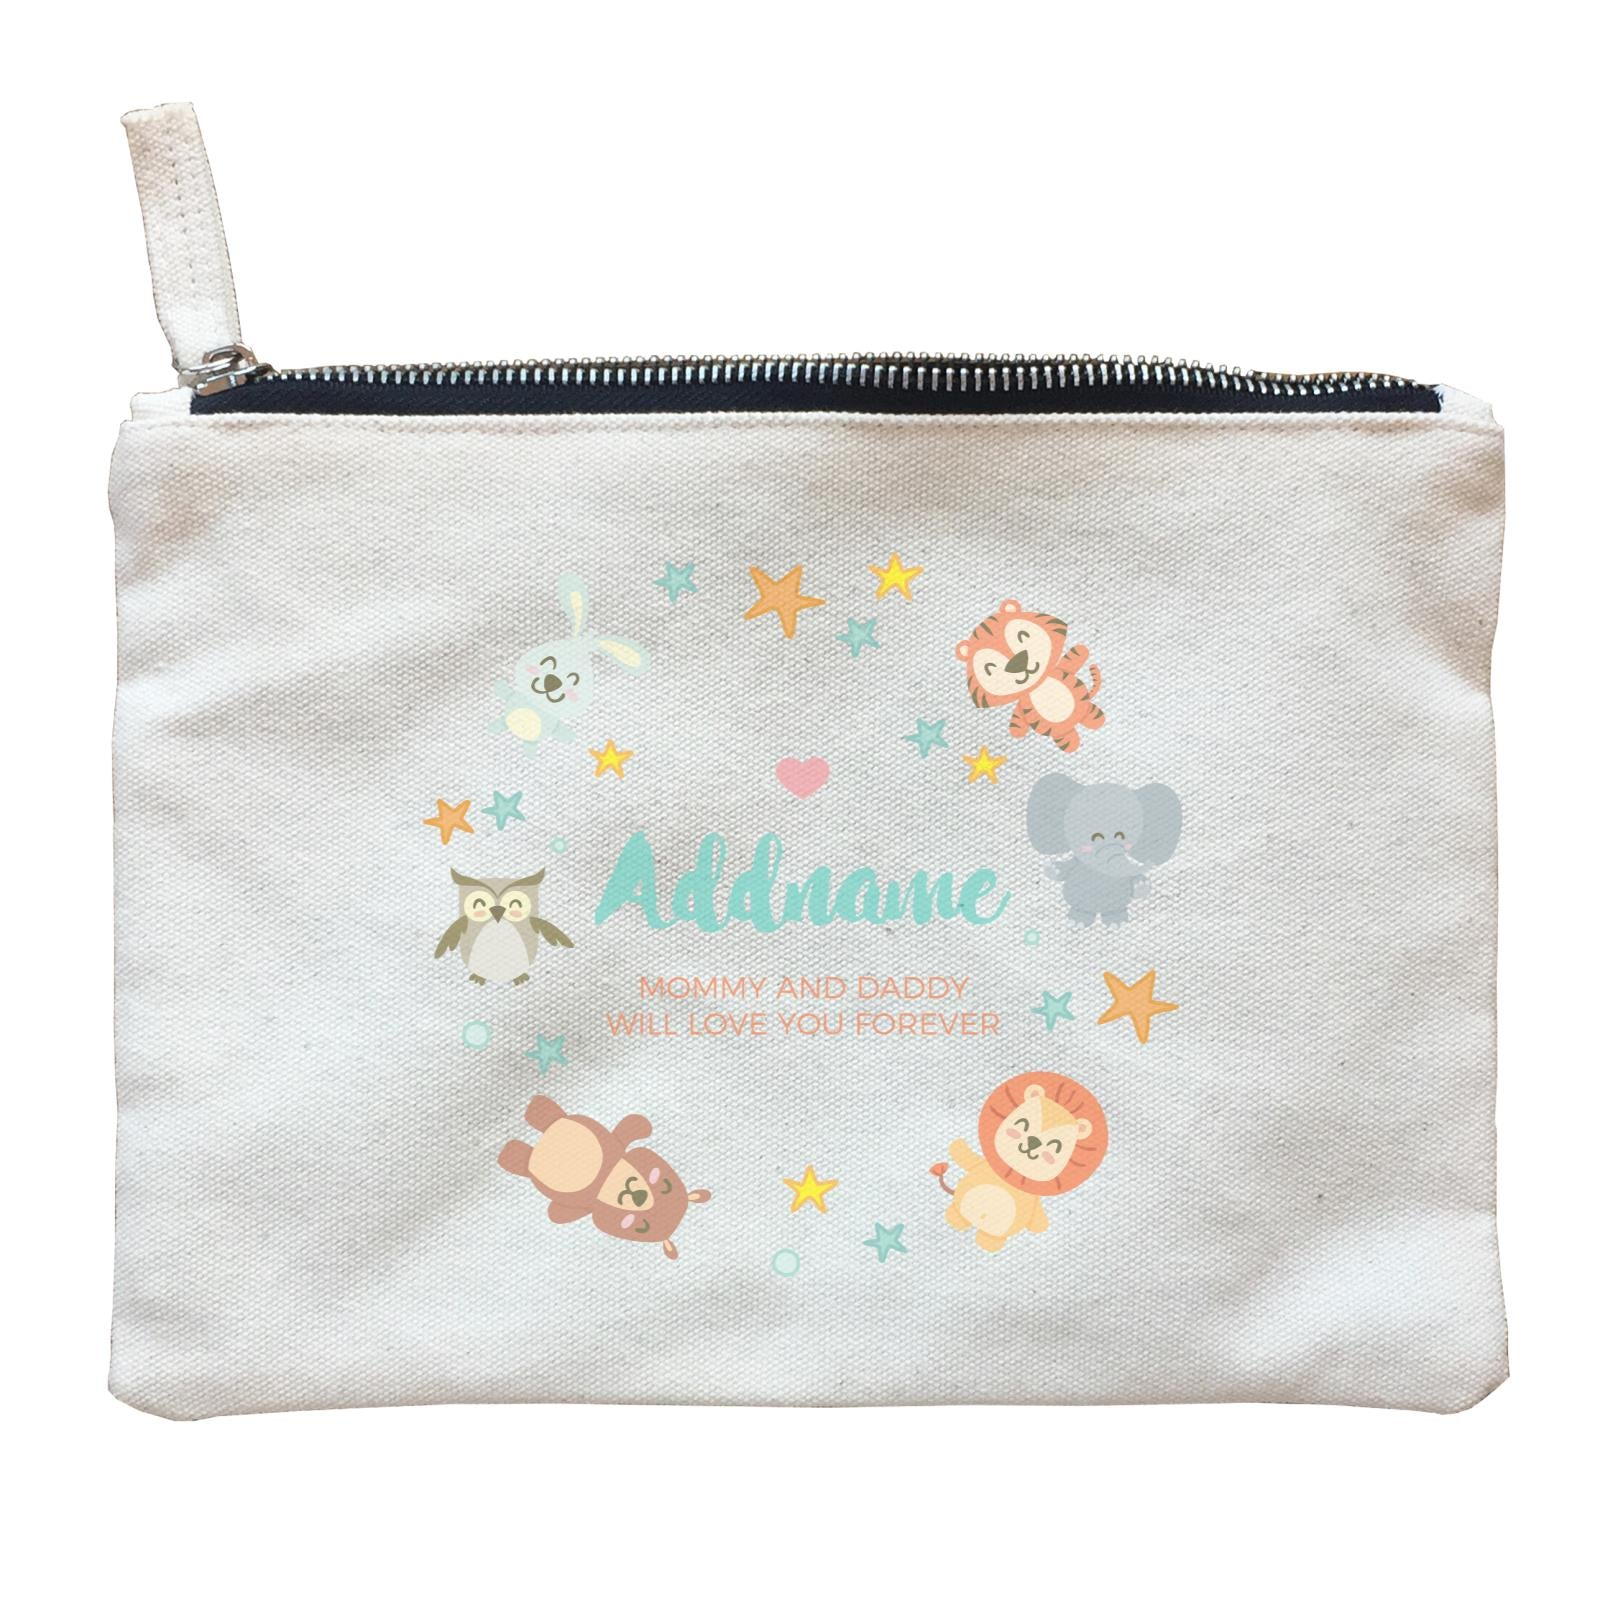 Cute Safari Animals with Stars Element Personalizable with Name and Text Zipper Pouch